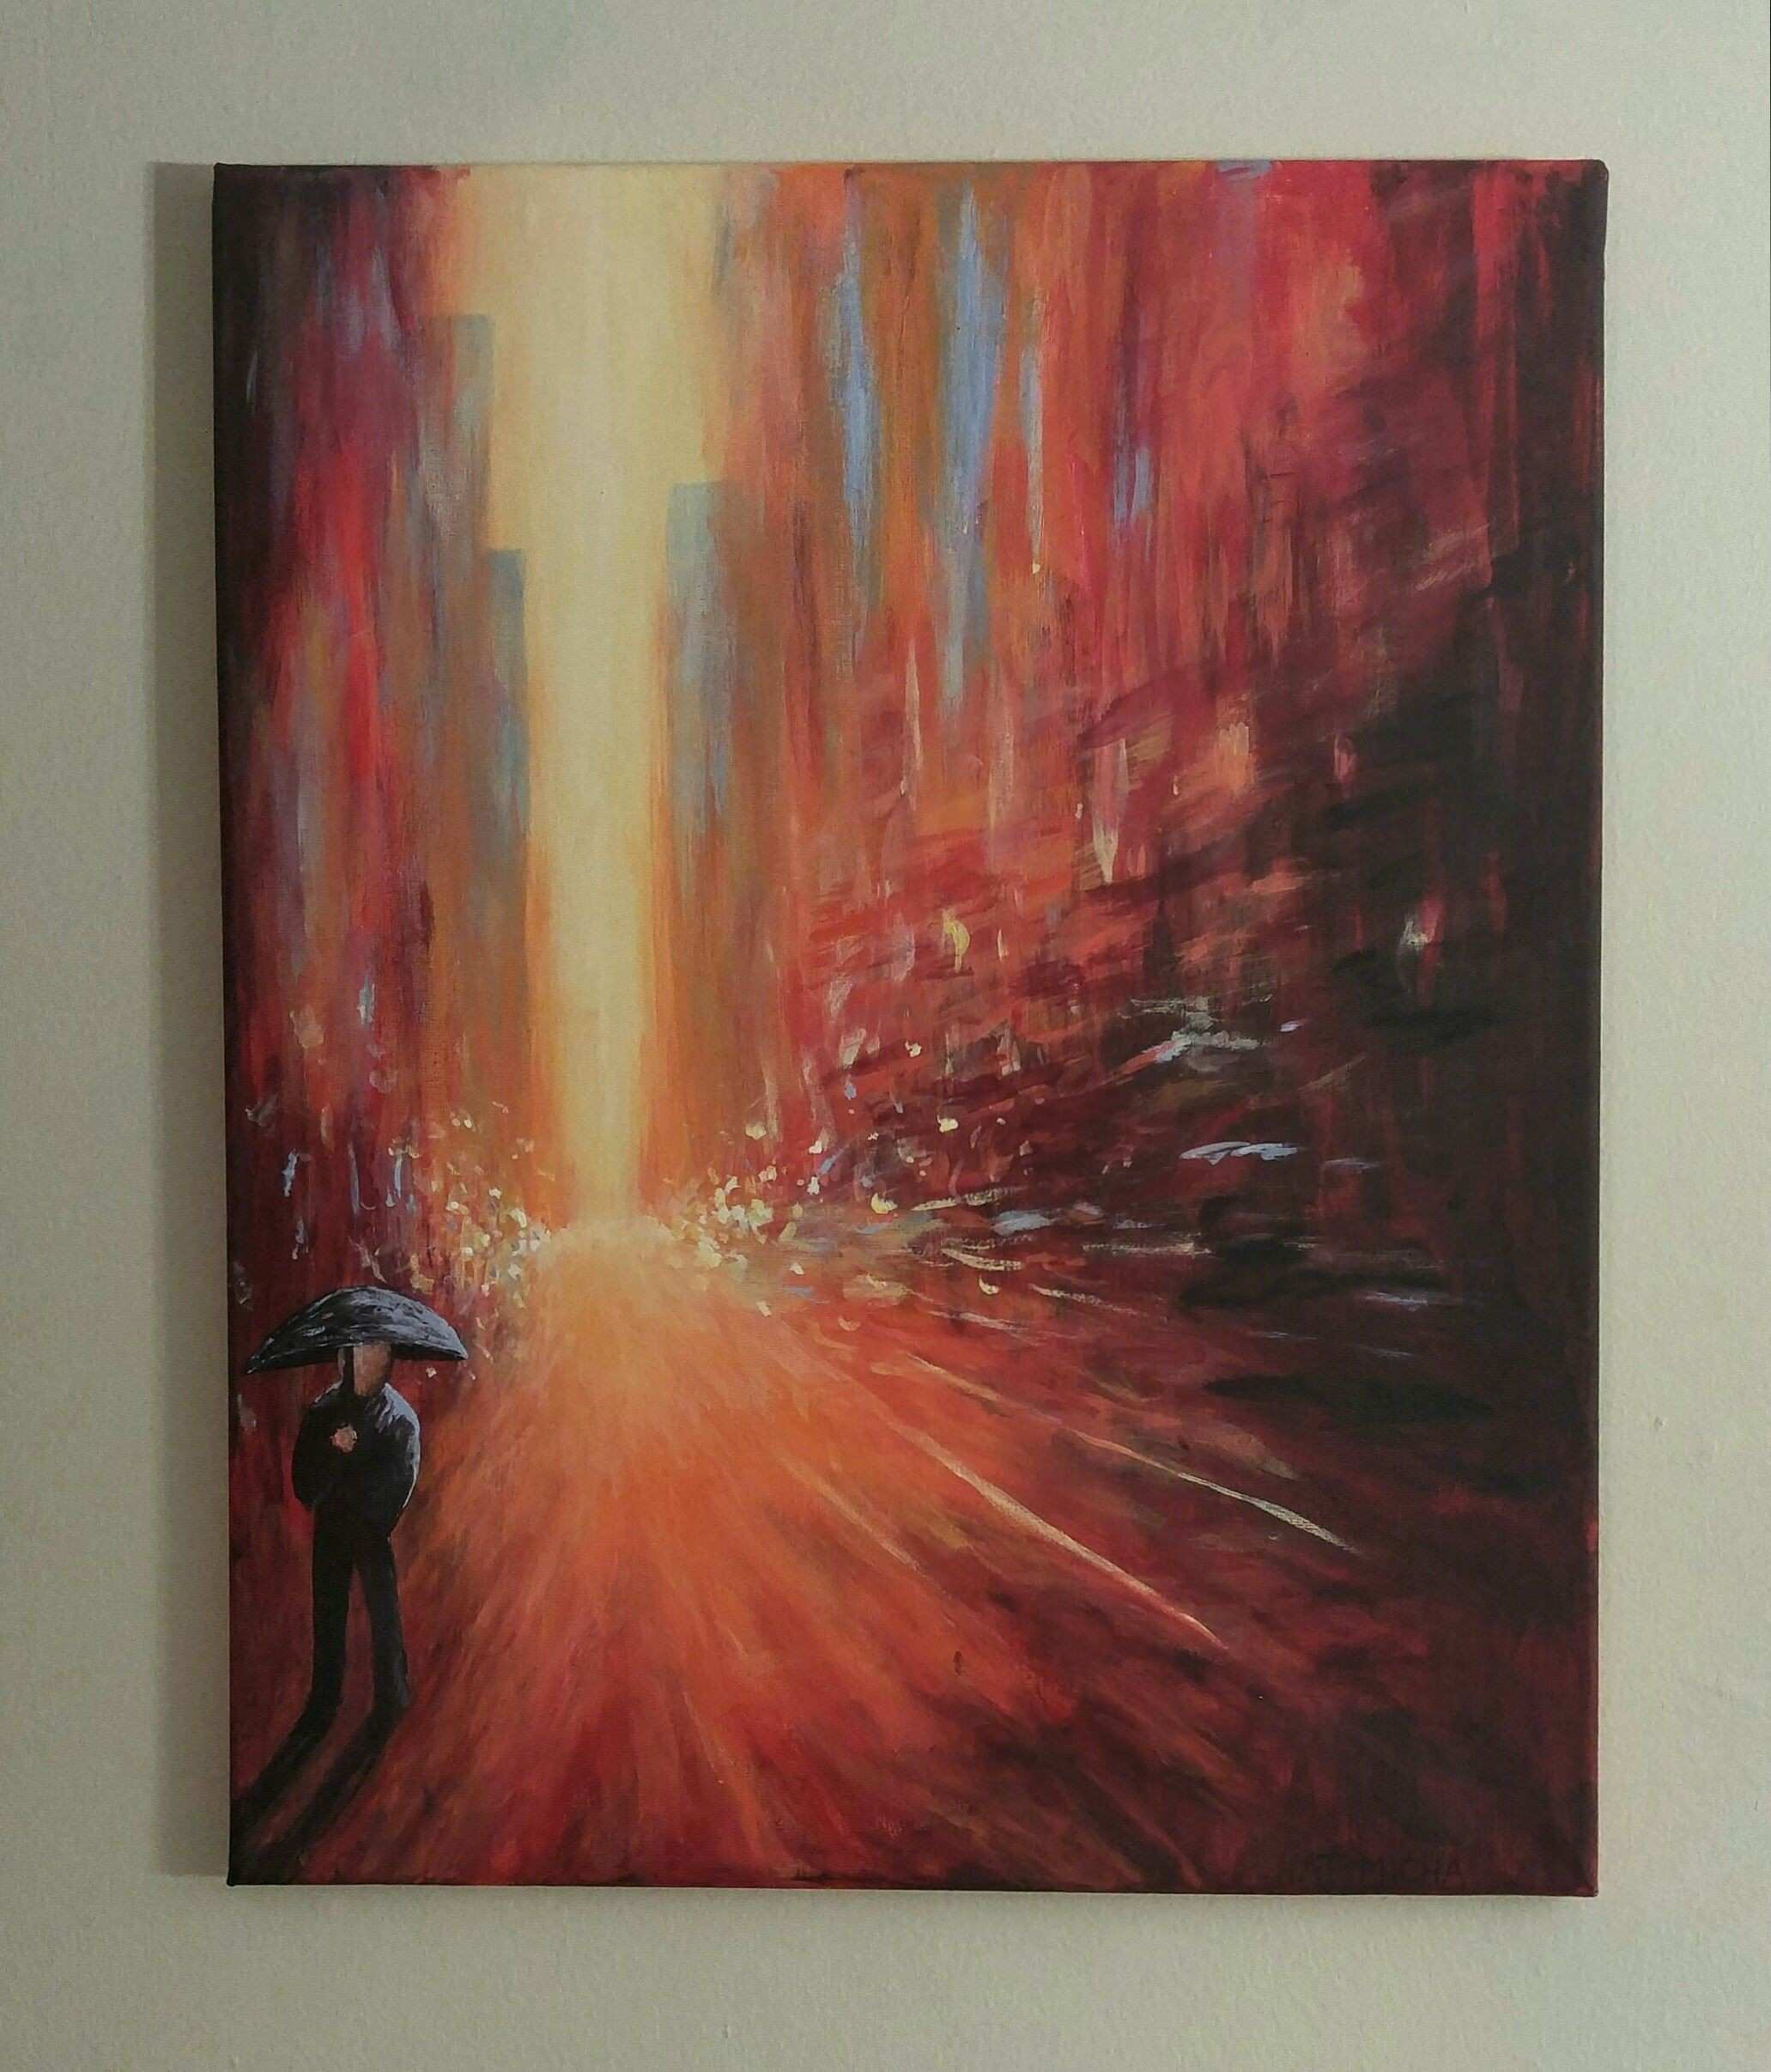 A Stroll in the City Acrylics 16 x 20 in imgur submitted by